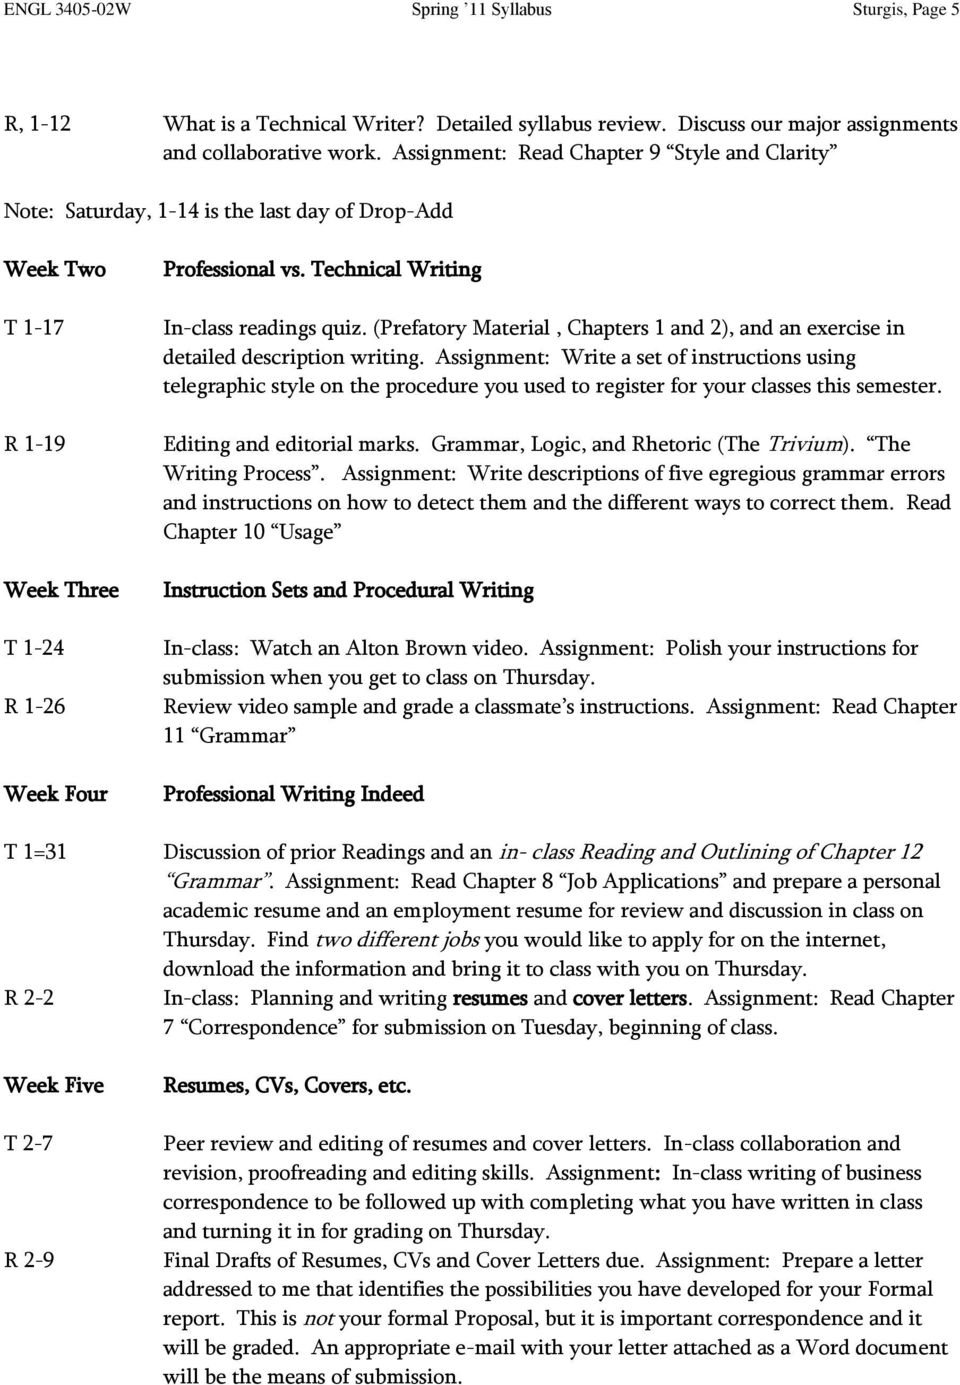 Technical Writing In-class readings quiz. (Prefatory Material, Chapters 1 and 2), and an exercise in detailed description writing.